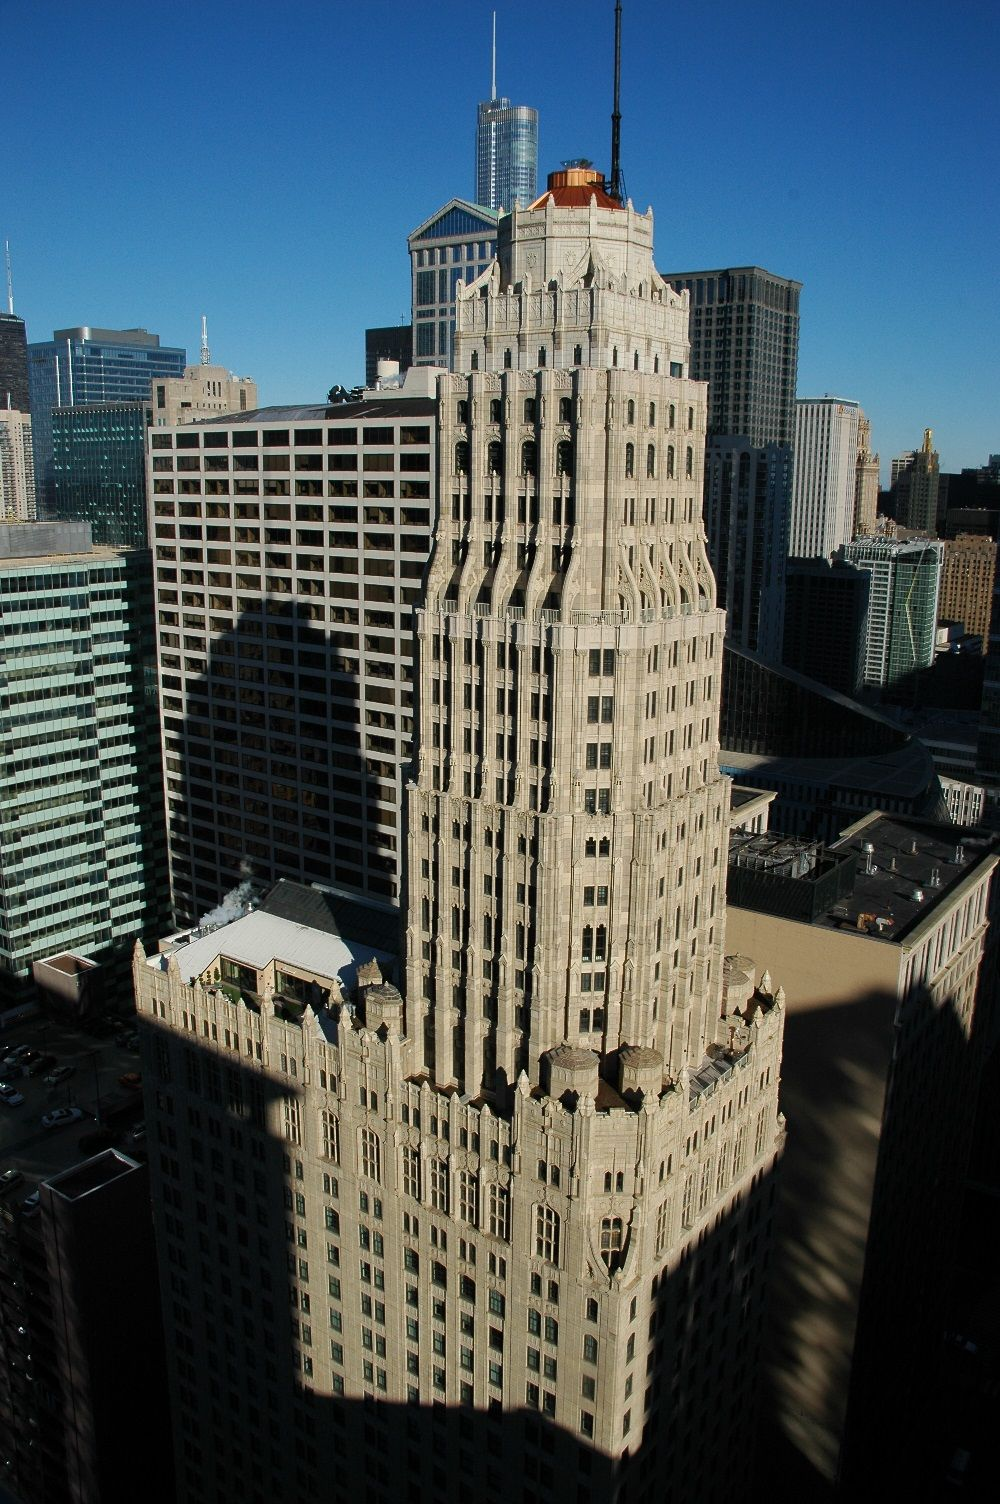 Randolph tower formerly known as the steuben club building is a historic gothic revival